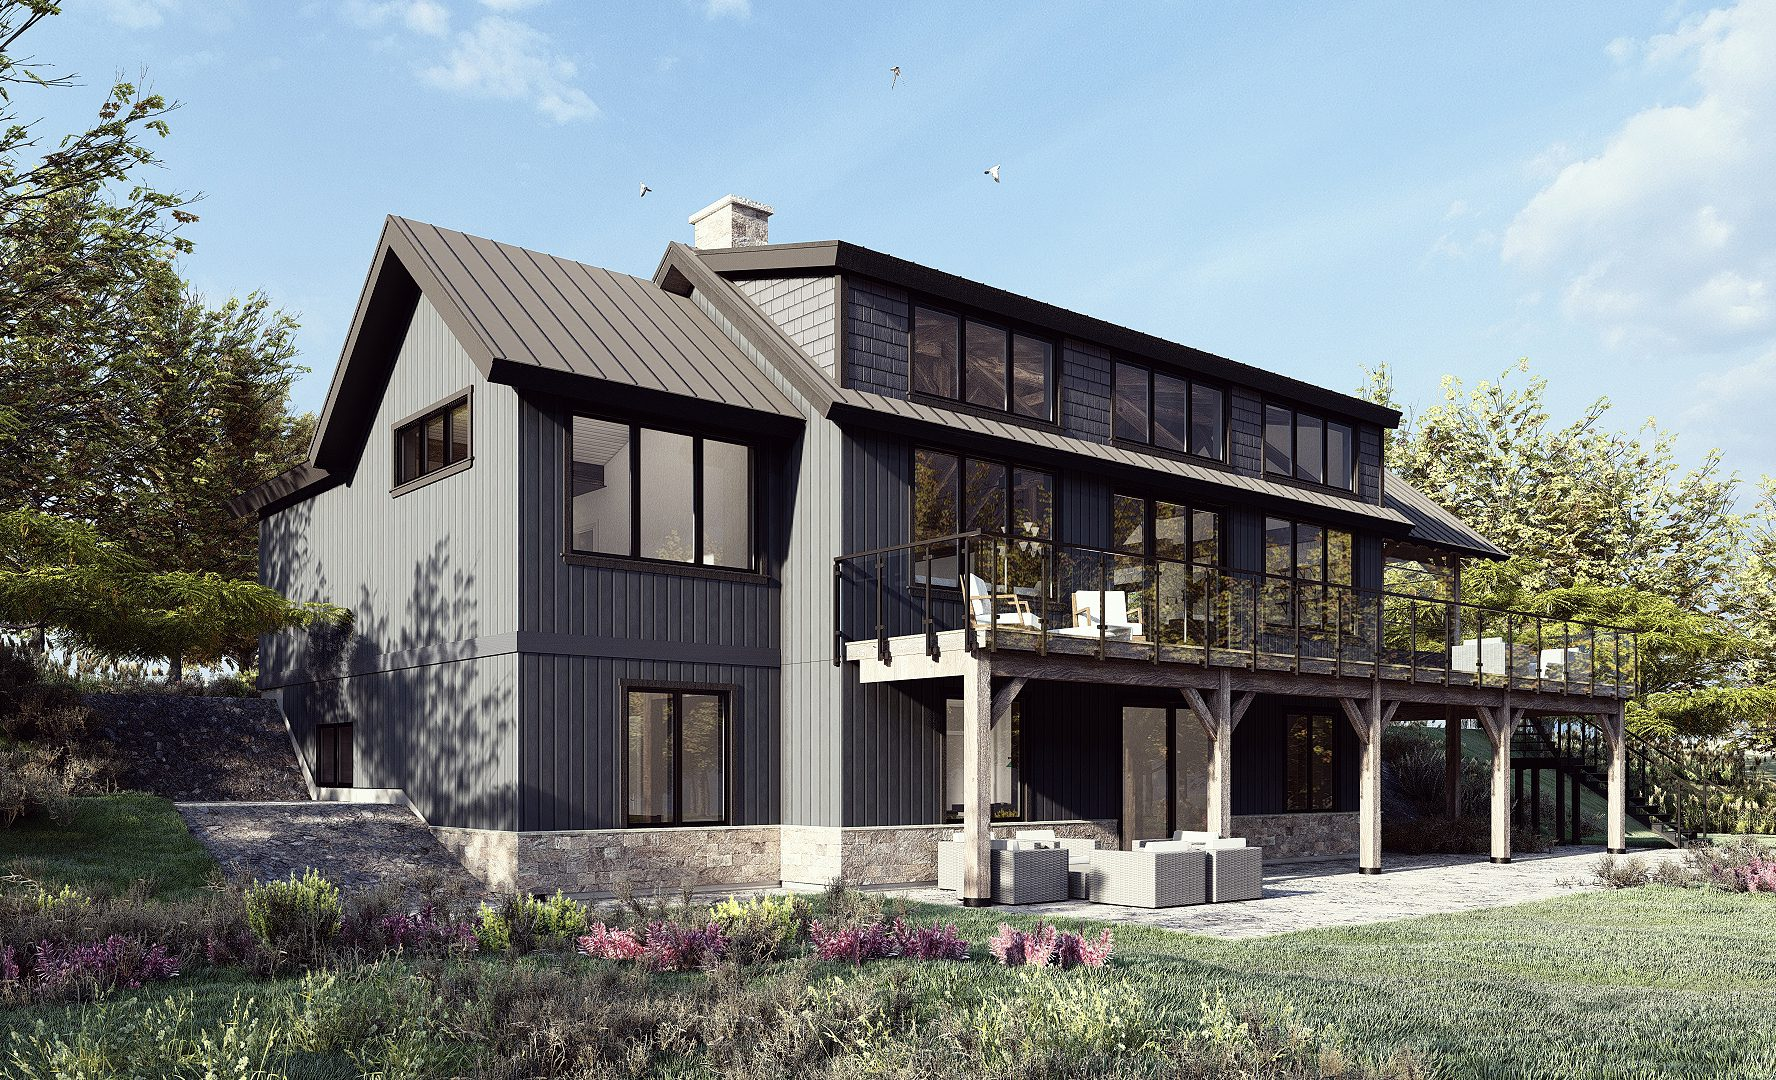 Normerica Timber Frames, House Plan, The Redstone 3920, Exterior, Rear, Side